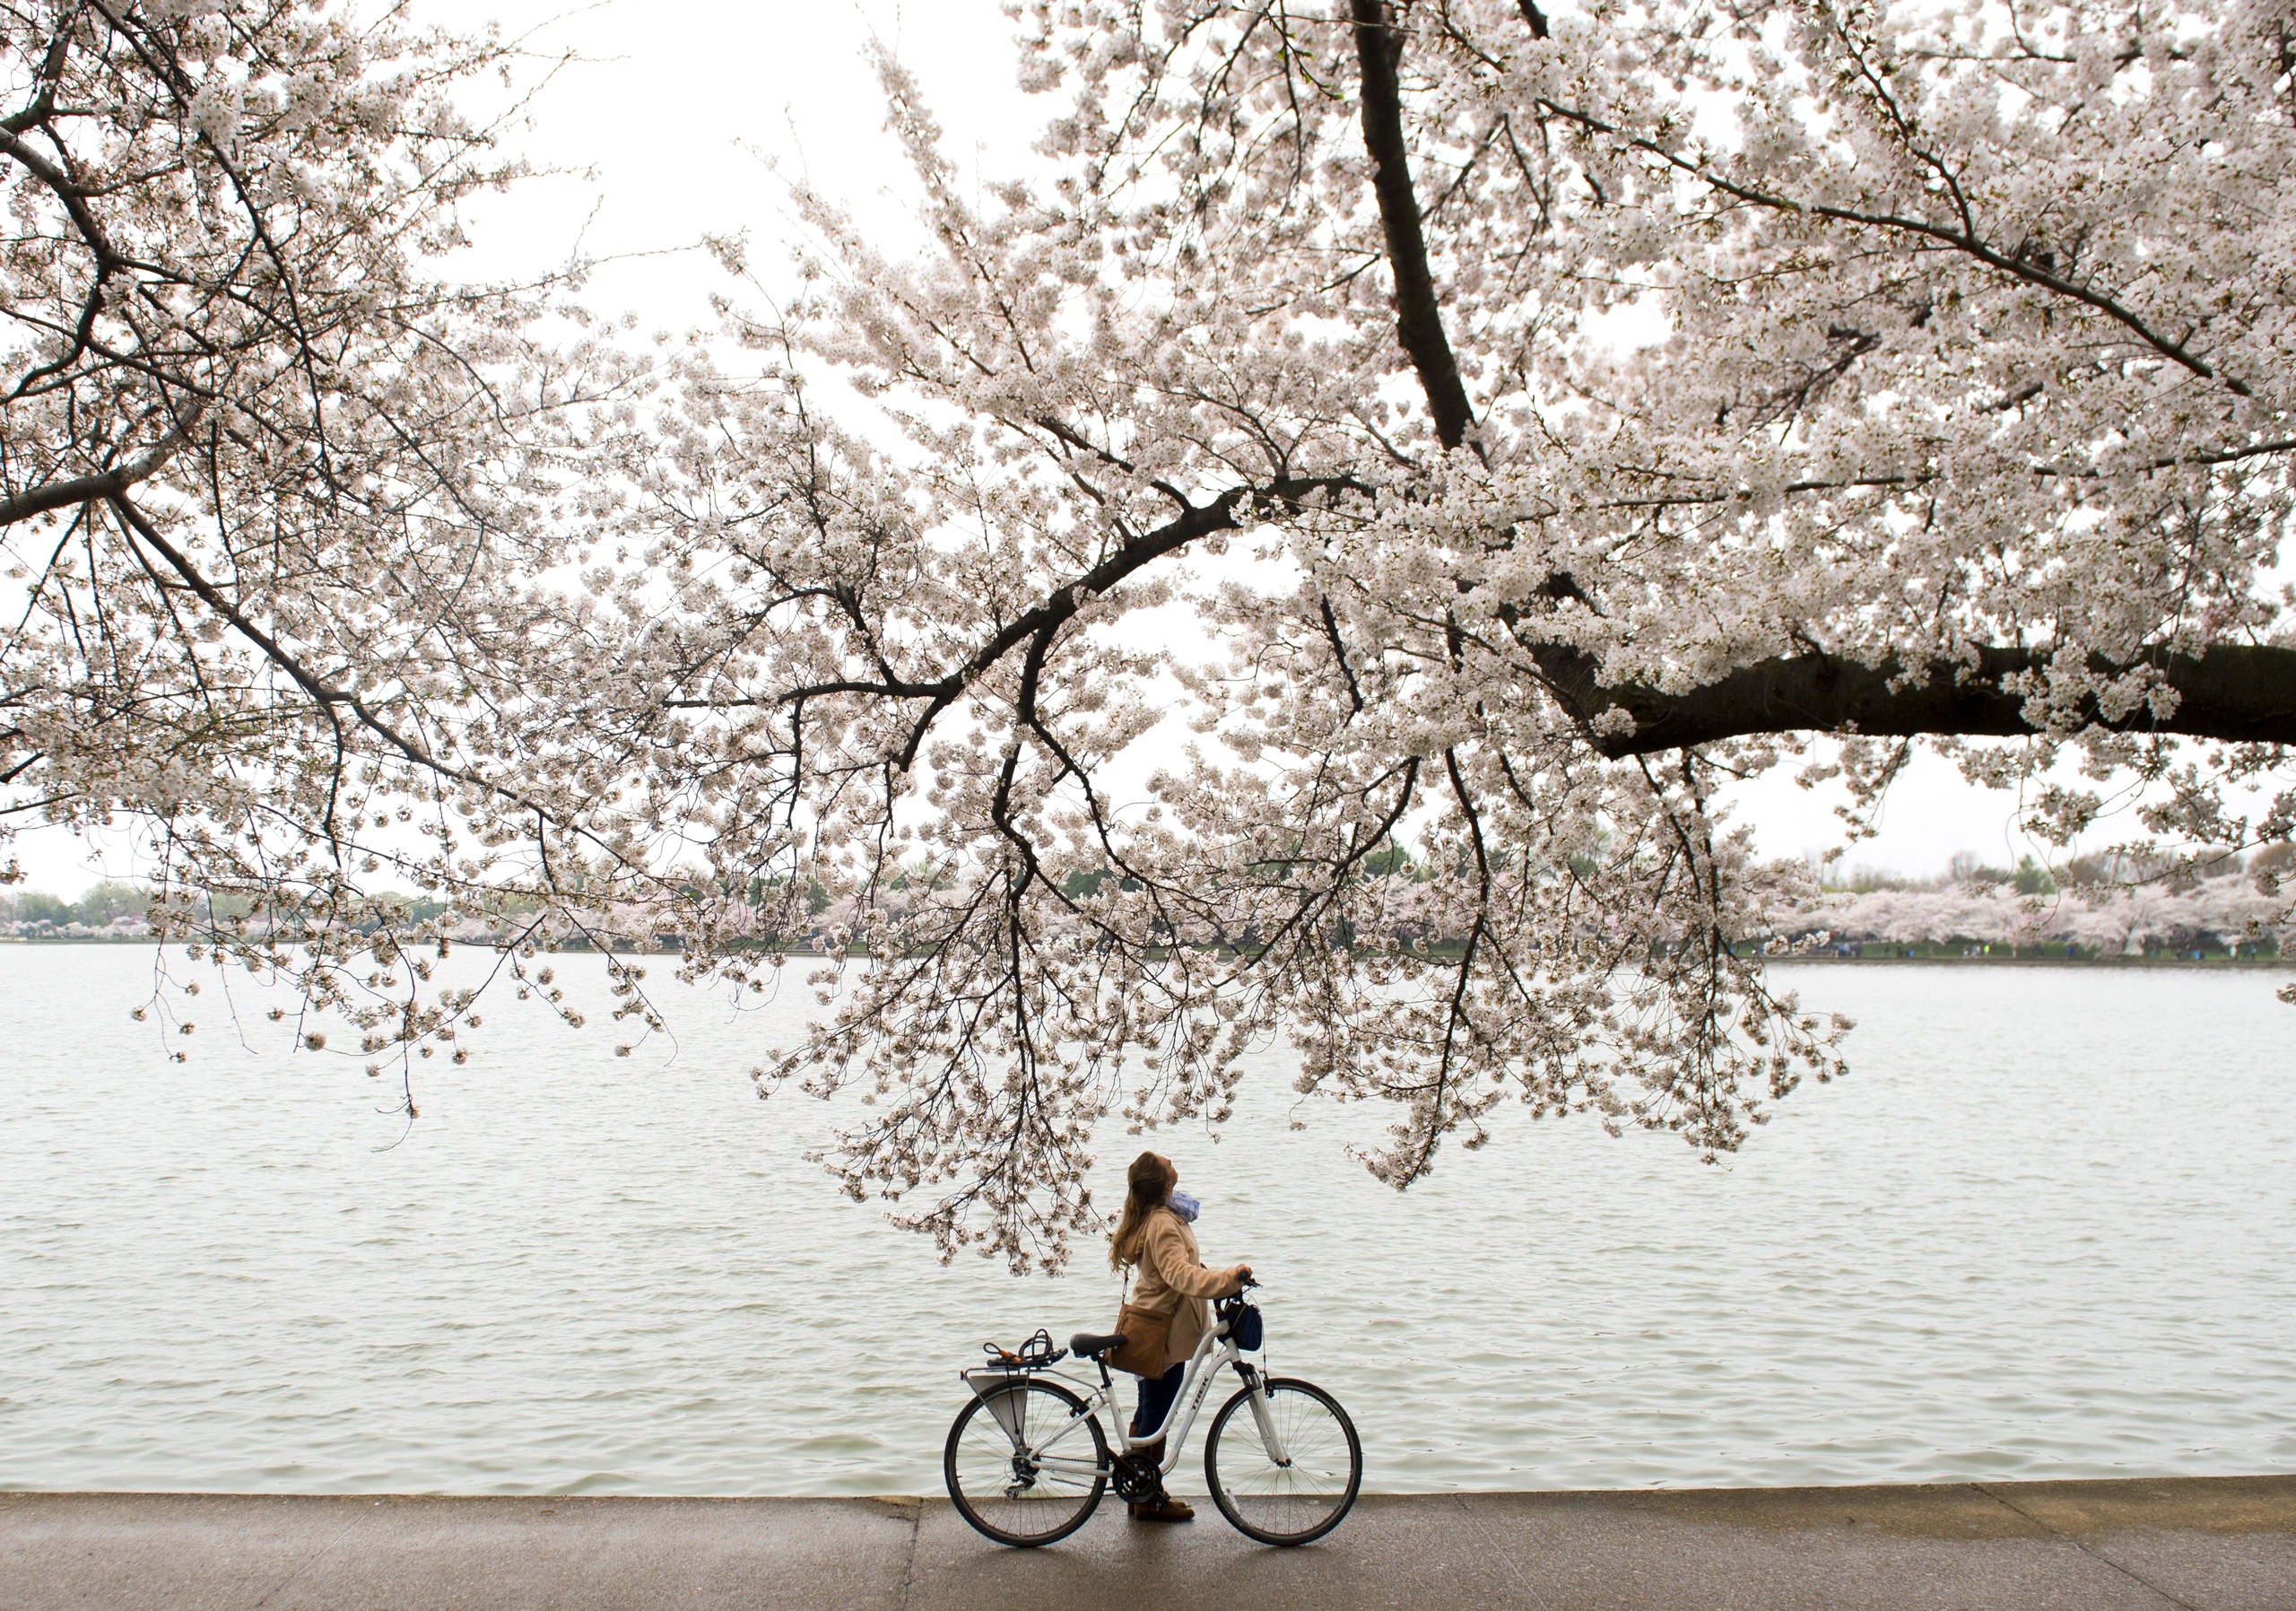 The Best Cities to Bike In - Washington, D.C.